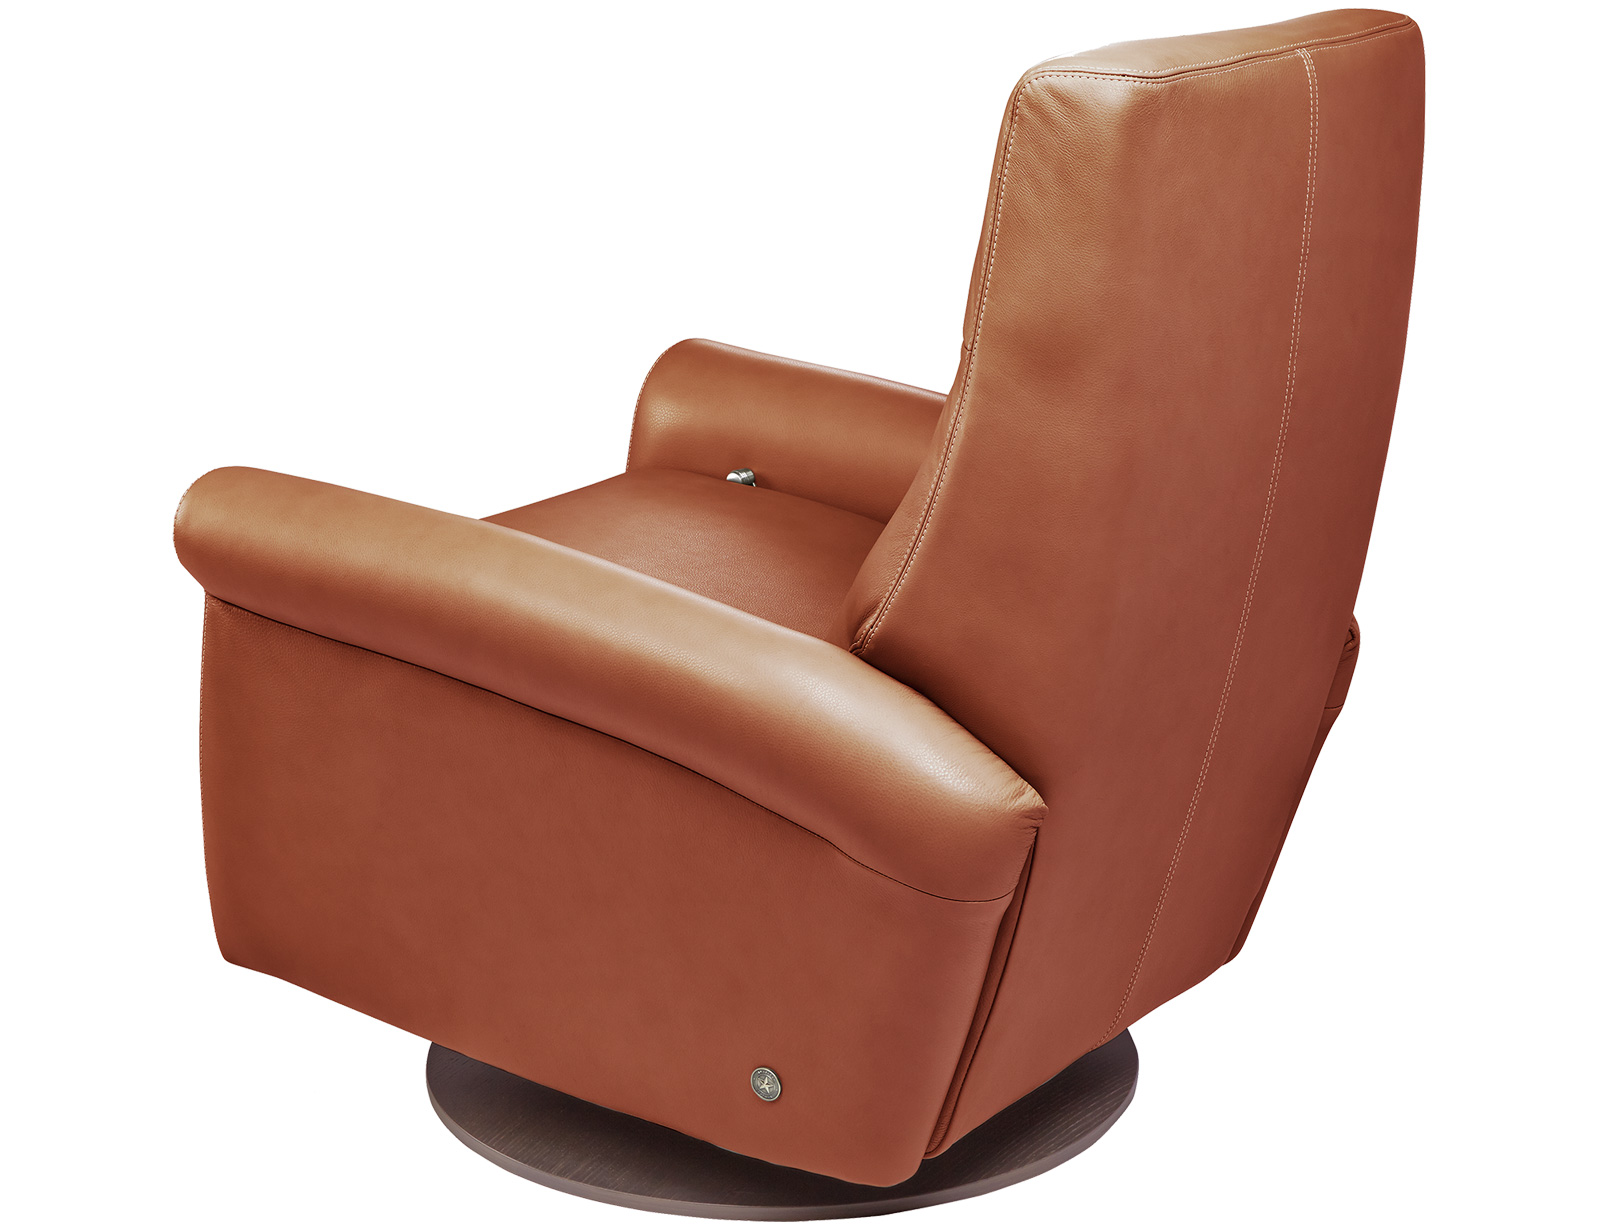 American Leather Ada Comfort Recliner available with swivel base